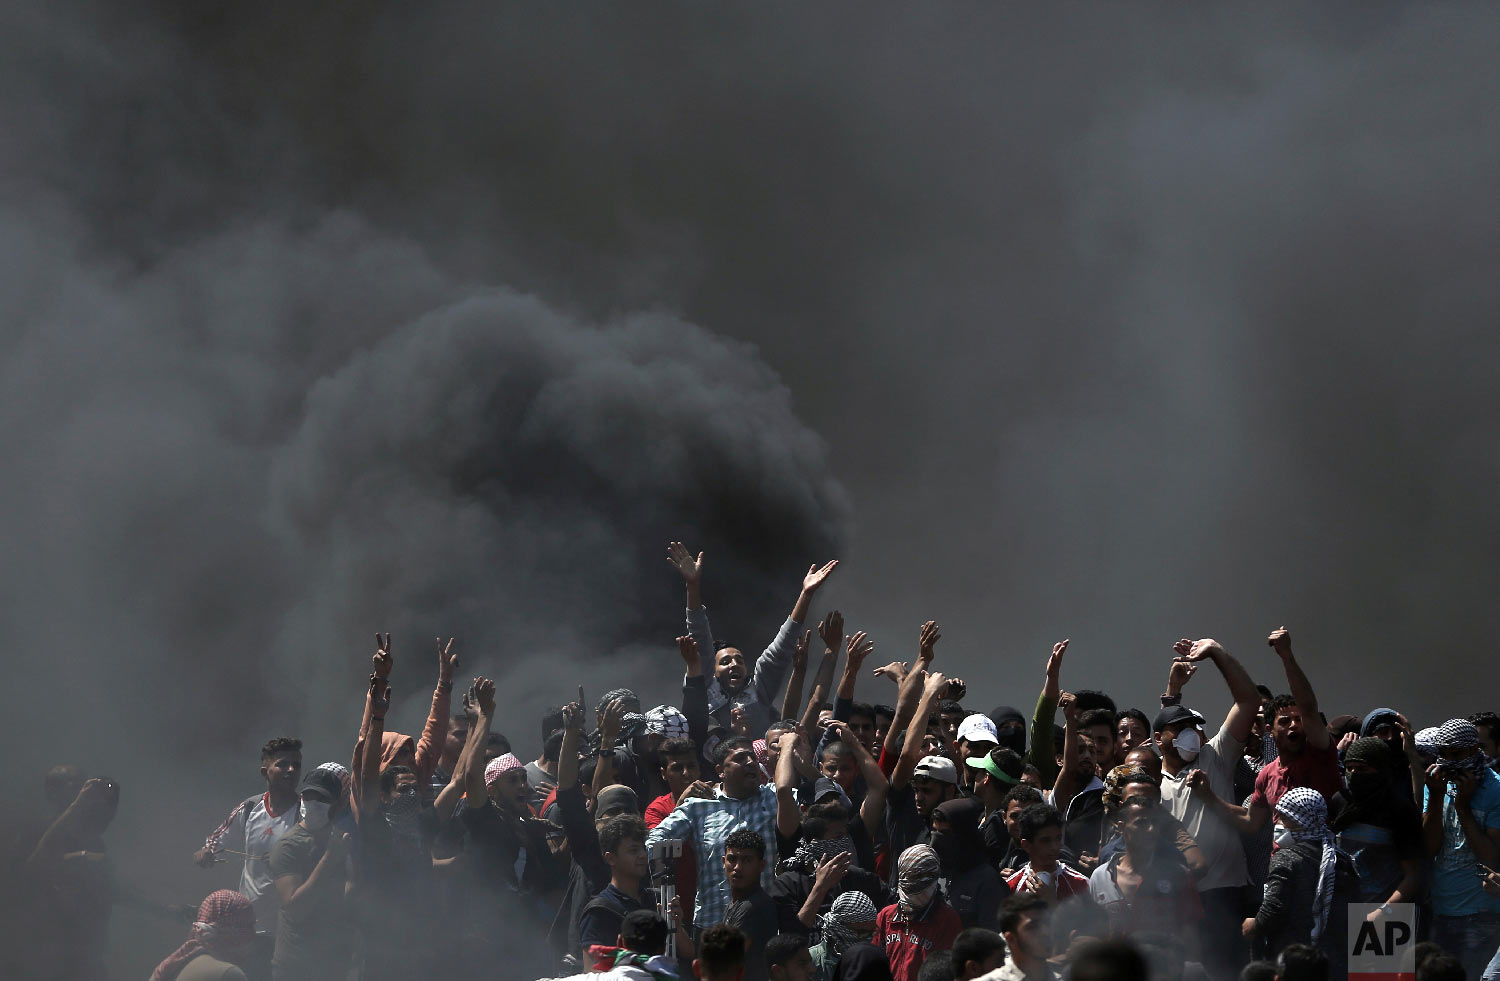 Palestinian protesters chant slogans as they burn tires during a protest on the Gaza Strip's border with Israel, Monday, May 14, 2018. (AP Photo/Khalil Hamra)